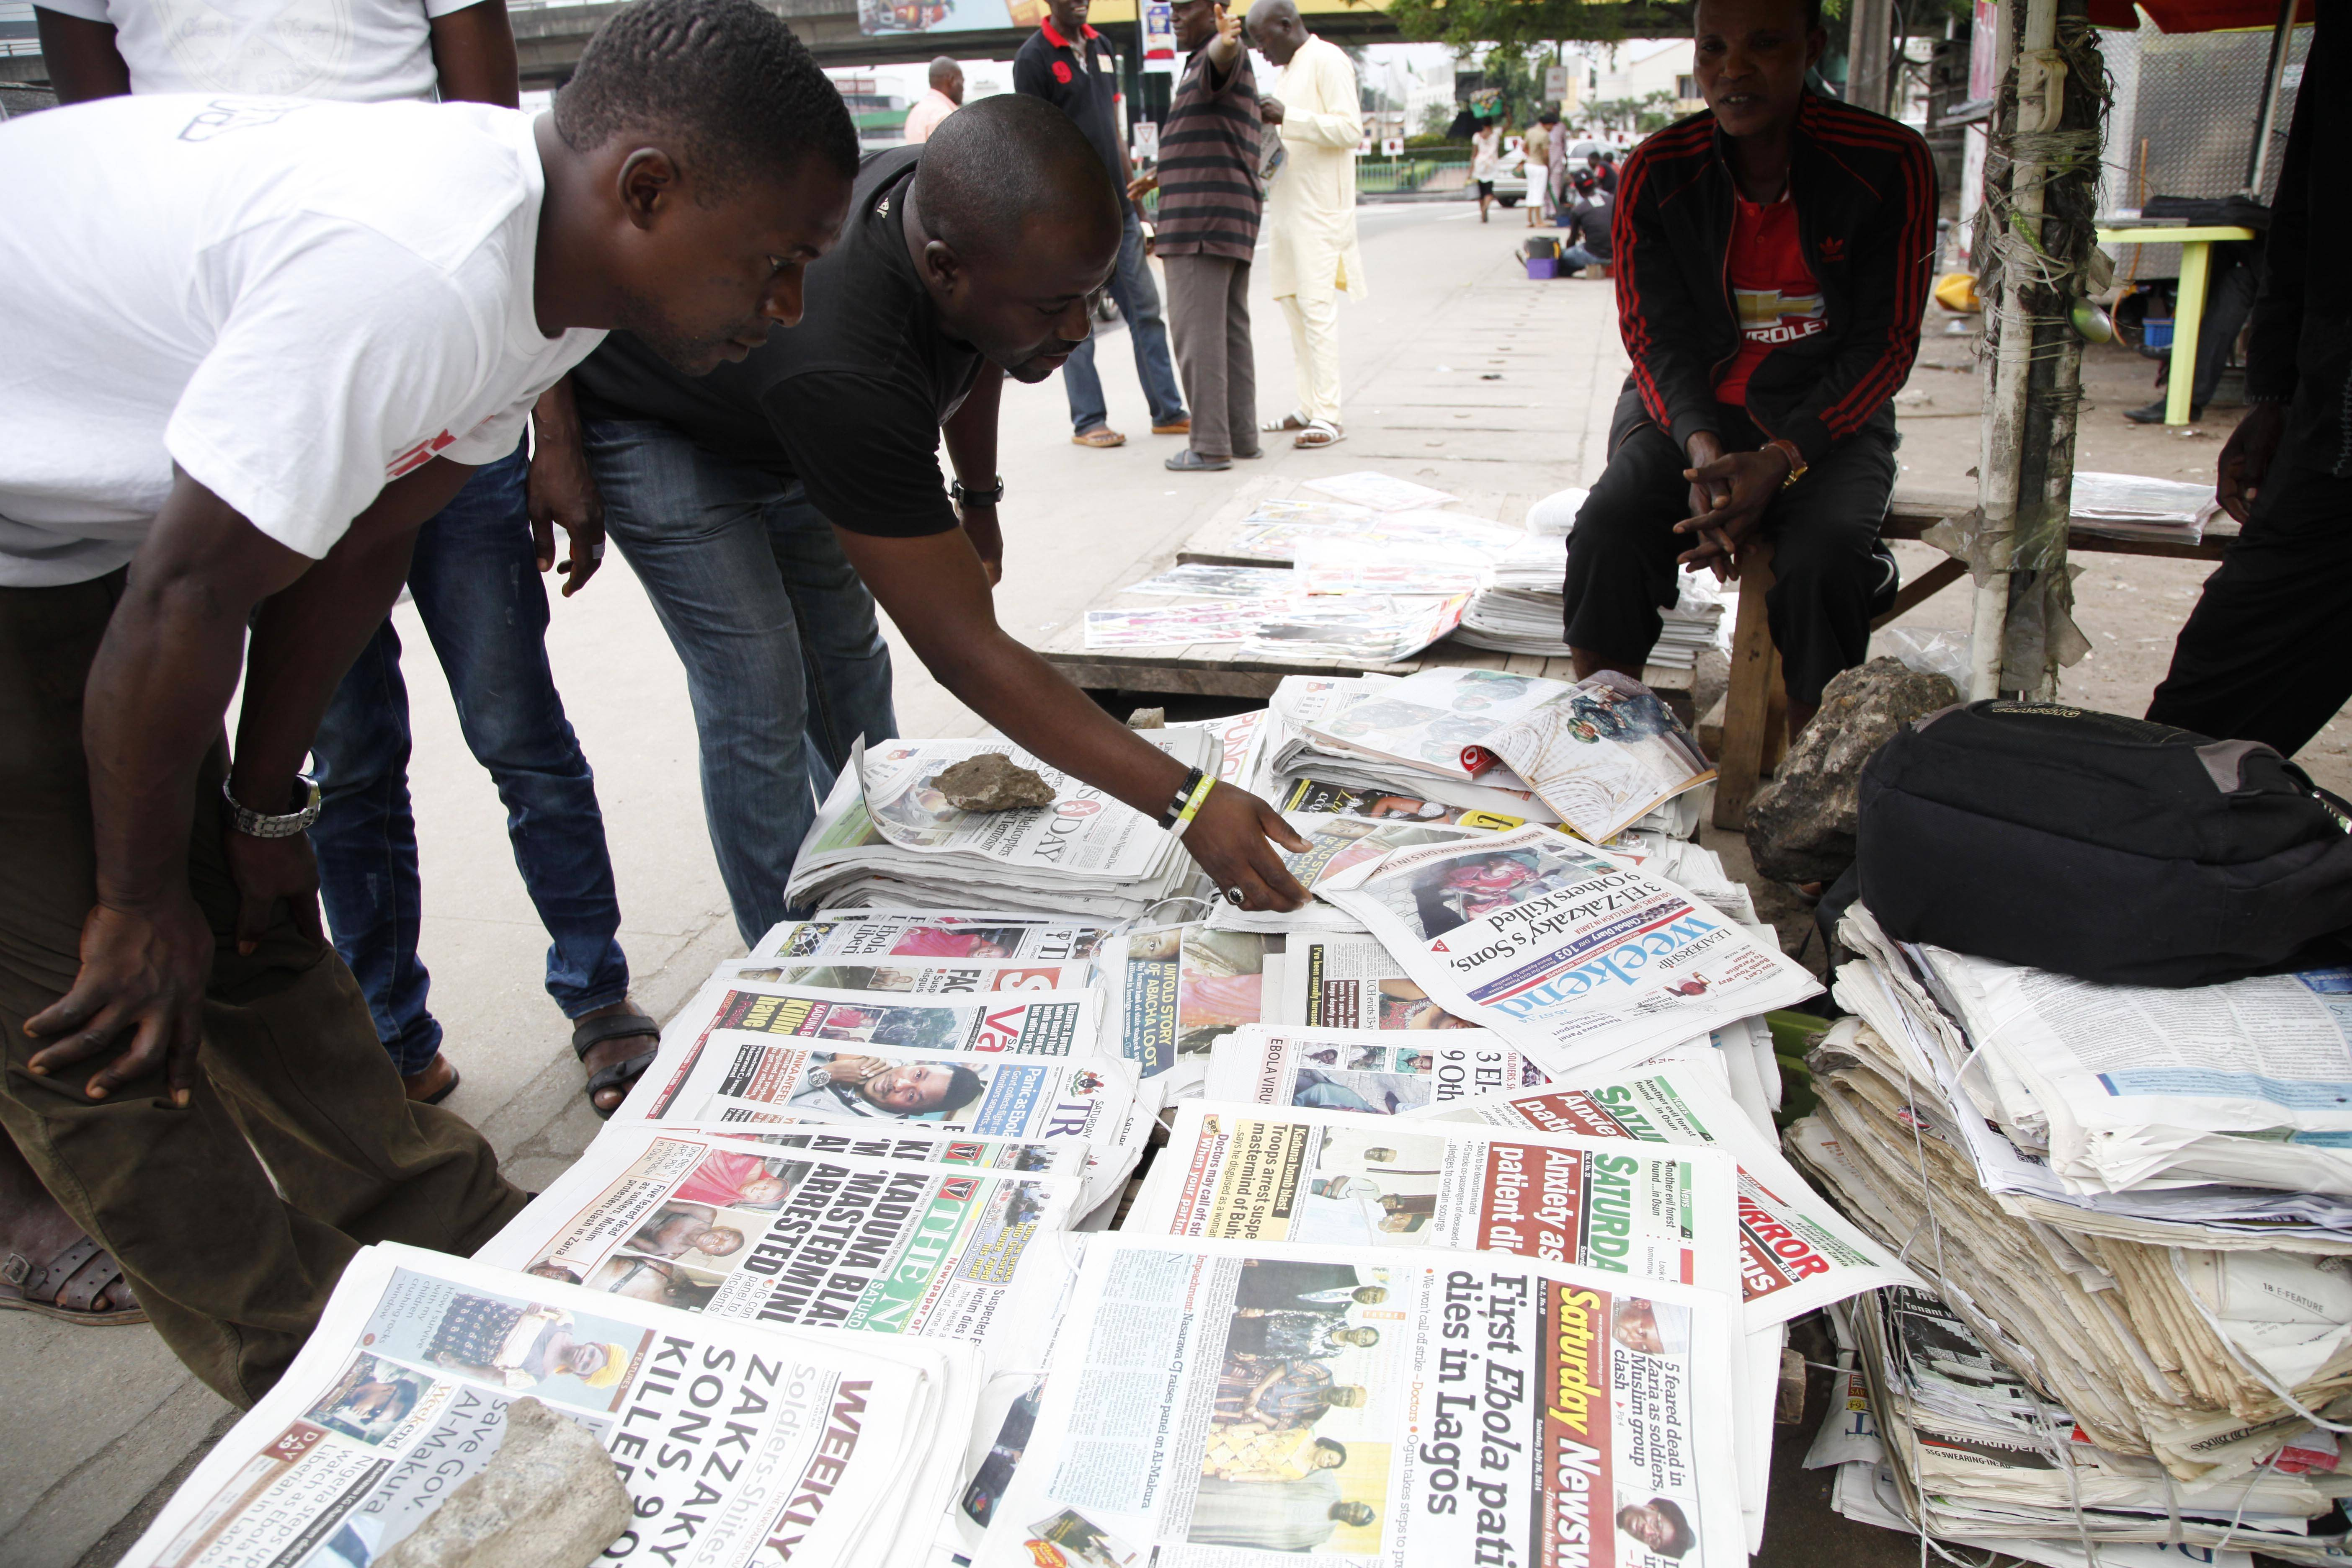 Men read newspapers Saturday on a street with headlines about Ebola Virus killing a Liberian in Lagos, Nigeria An Ebola outbreak that has left more than 660 people dead across West Africa has spread to the continent's most populous nation after a Liberian man with a high fever vomited aboard an airplane to Nigeria and then died there, officials said Friday. The 40-year-old man had recently lost his sister to Ebola in Liberia, health officials there said. It was not immediately clear how he managed to board a flight, but he was moved into an isolation ward upon arrival in Nigeria on Tuesday and died on Friday.